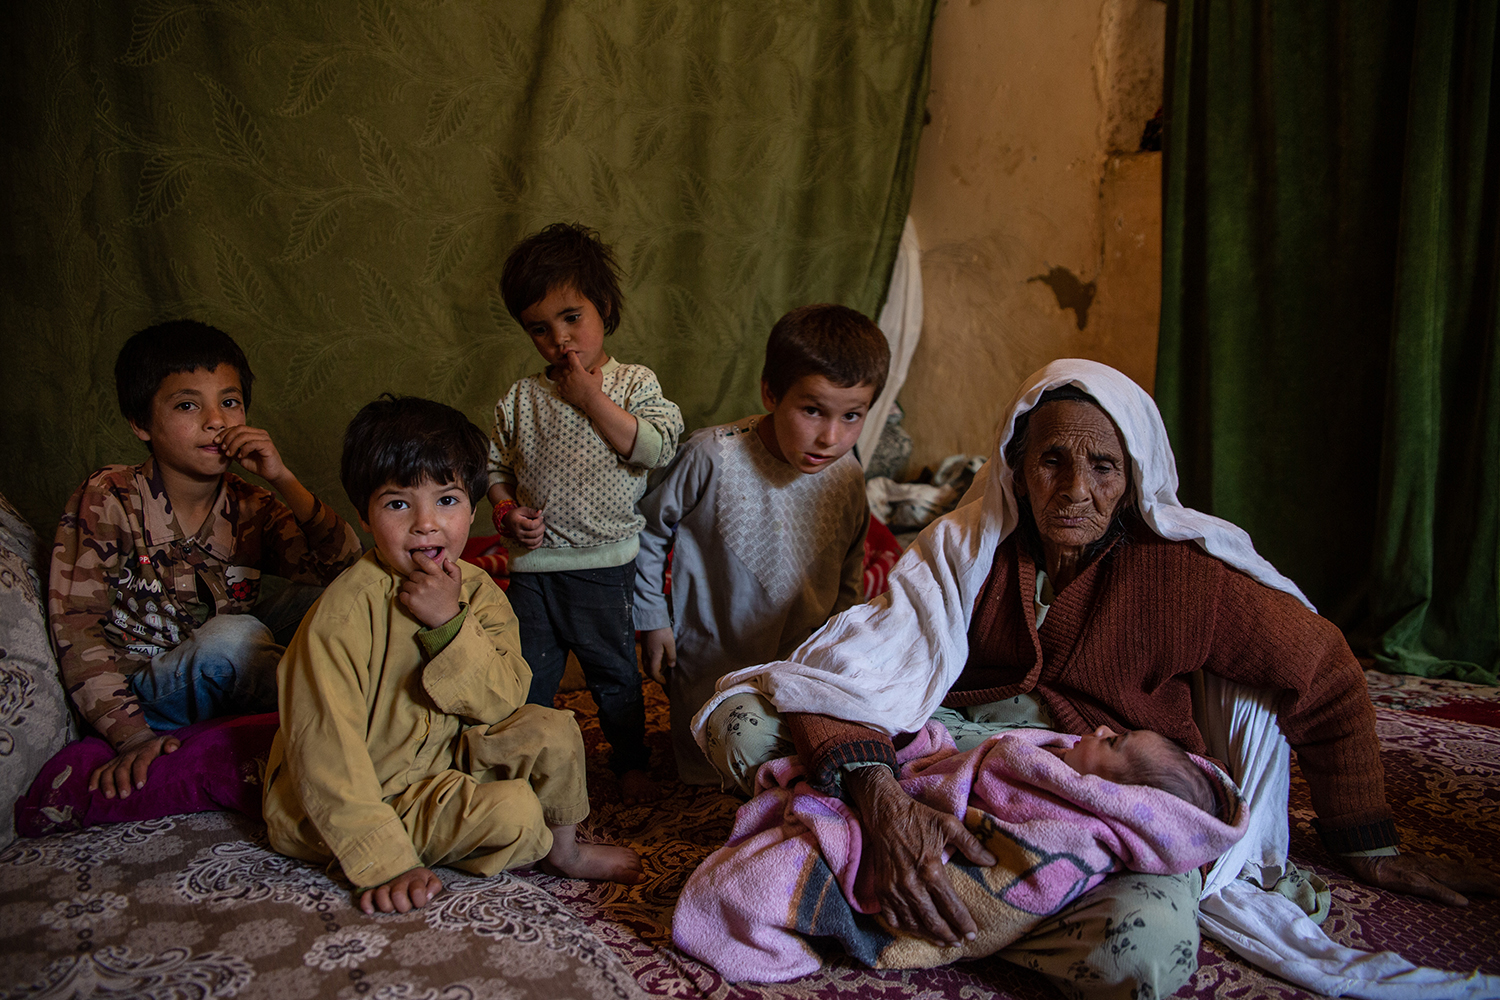 An Afghan woman surrounded by children in her house in Qarabagh.